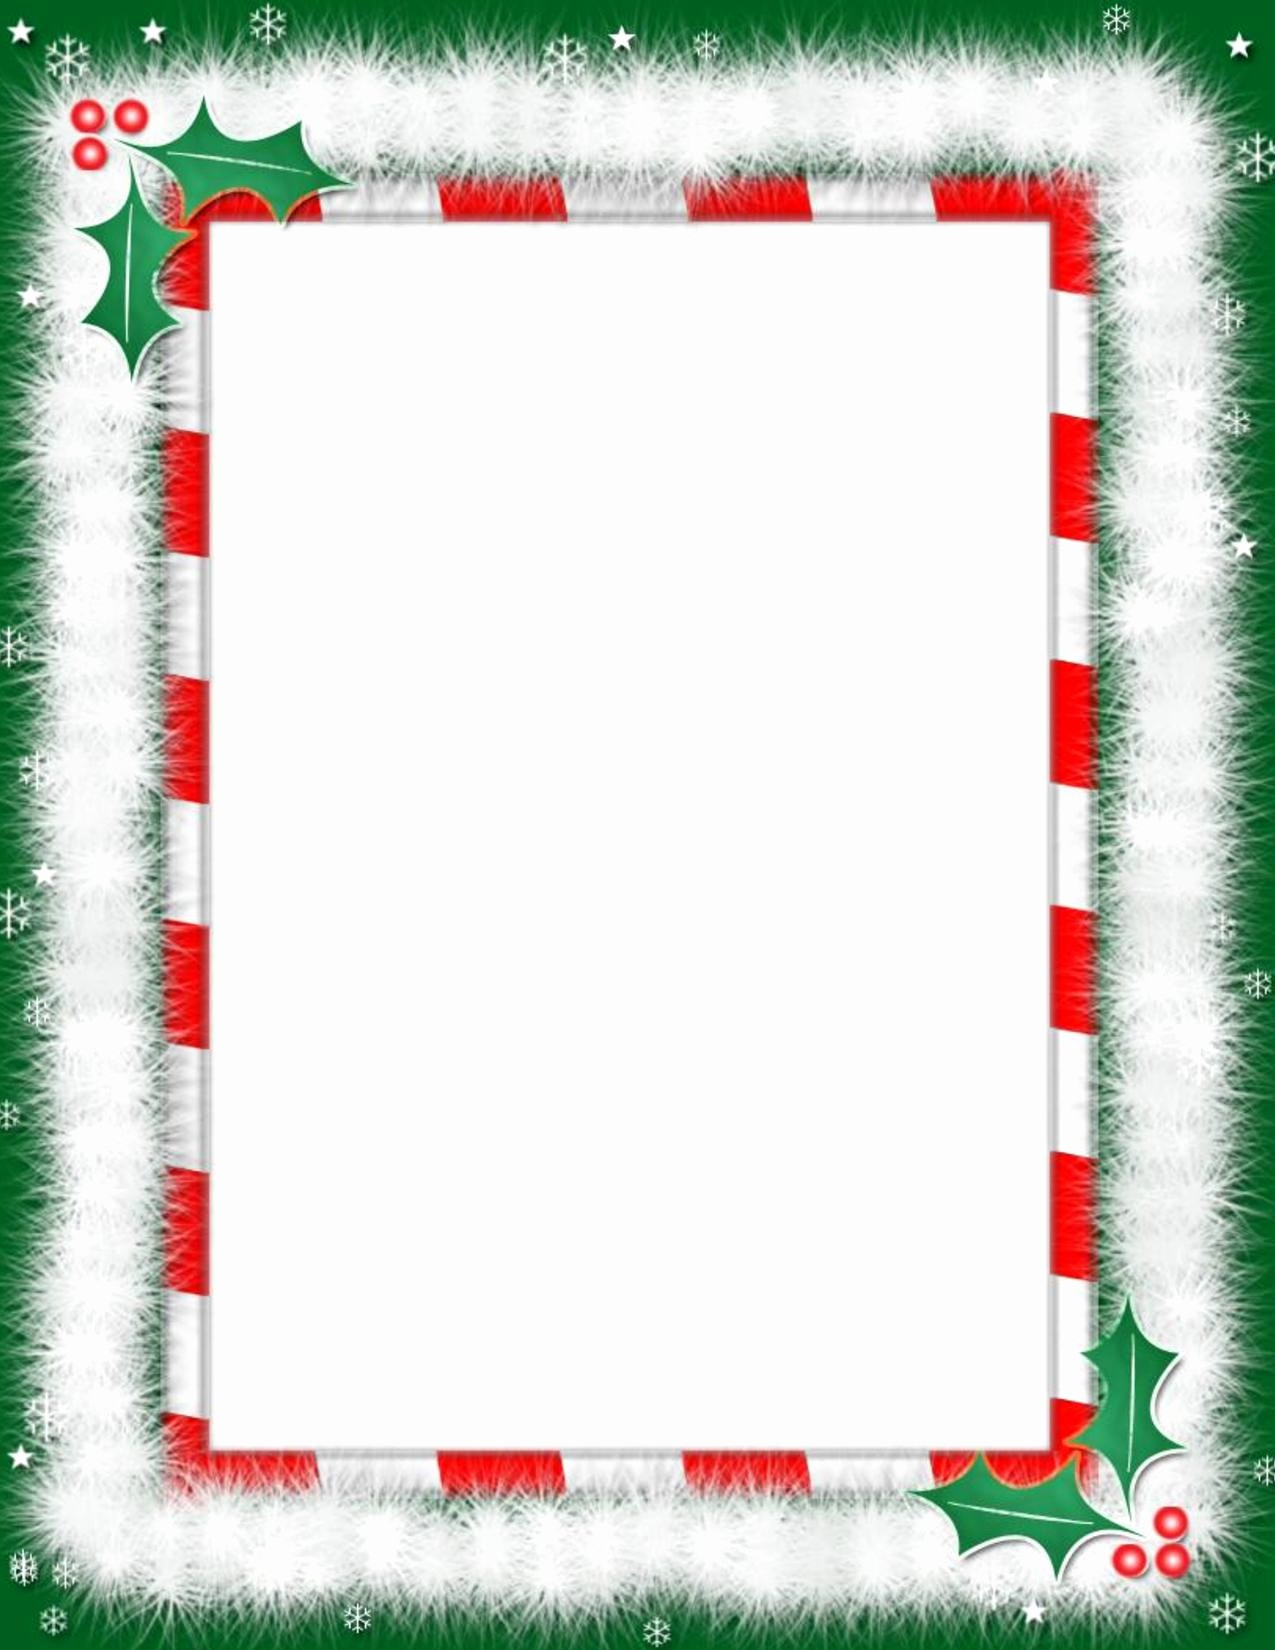 Free Christmas Borders for Letters New Christmas Borders for Letters to Santa – Festival Collections